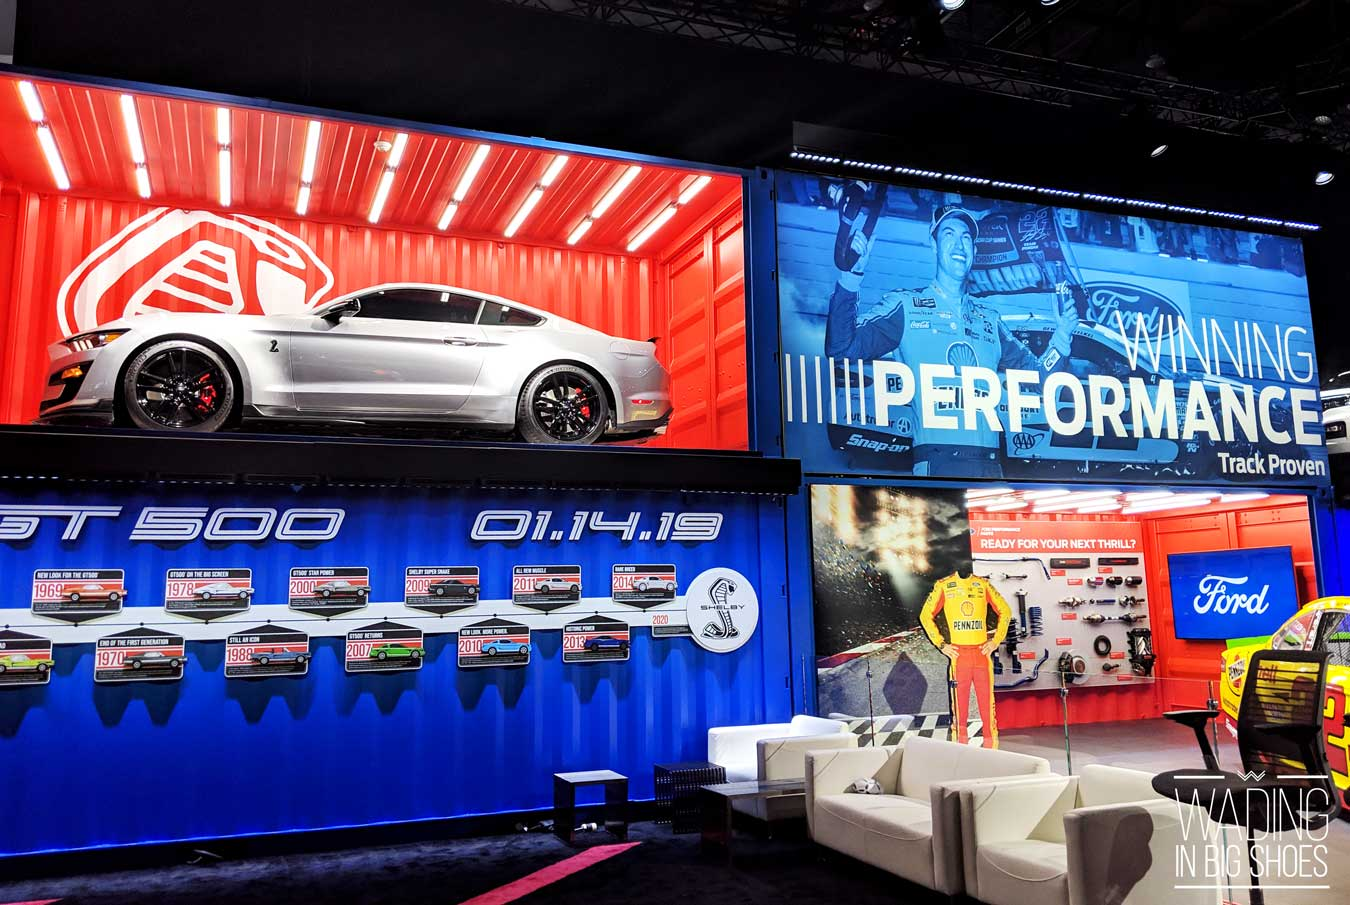 Detroit Auto Show 2019 Highlights: Must-See Cars + Best Interactive Exhibits (via Wading in Big Shoes)